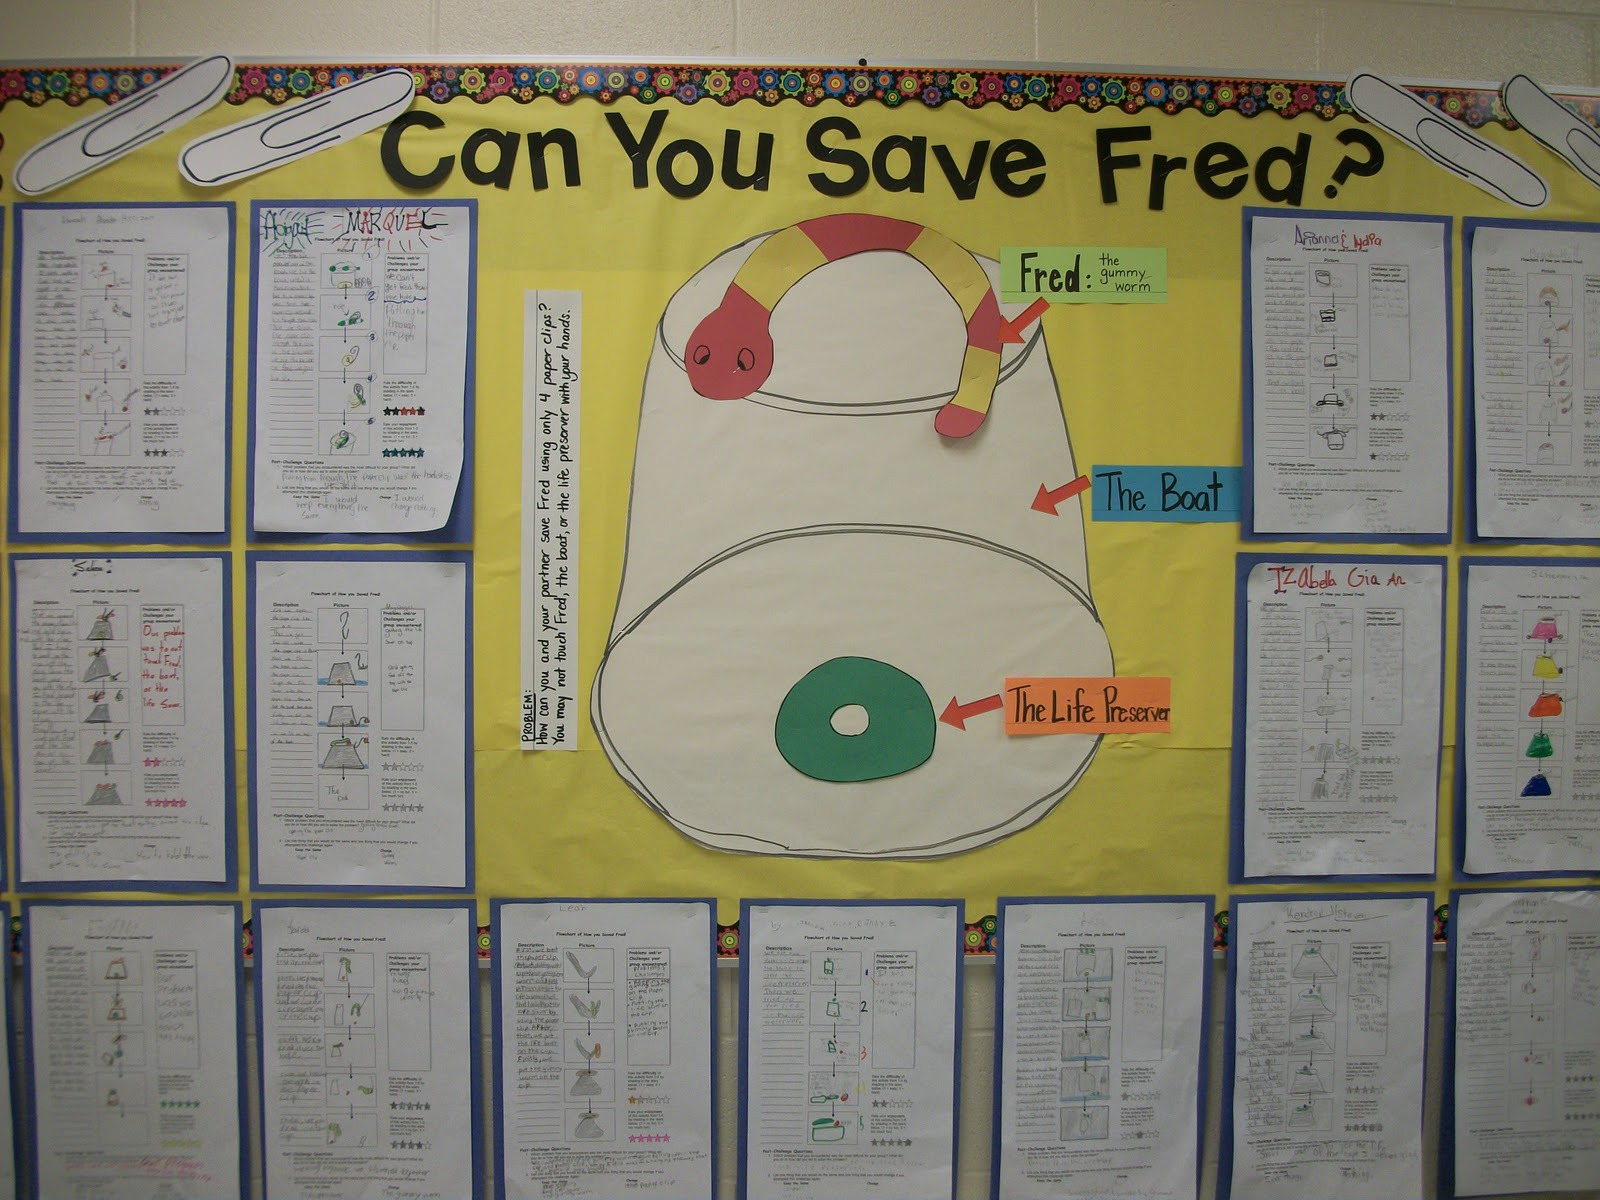 Smart Chick Teacher Can You Save Fred